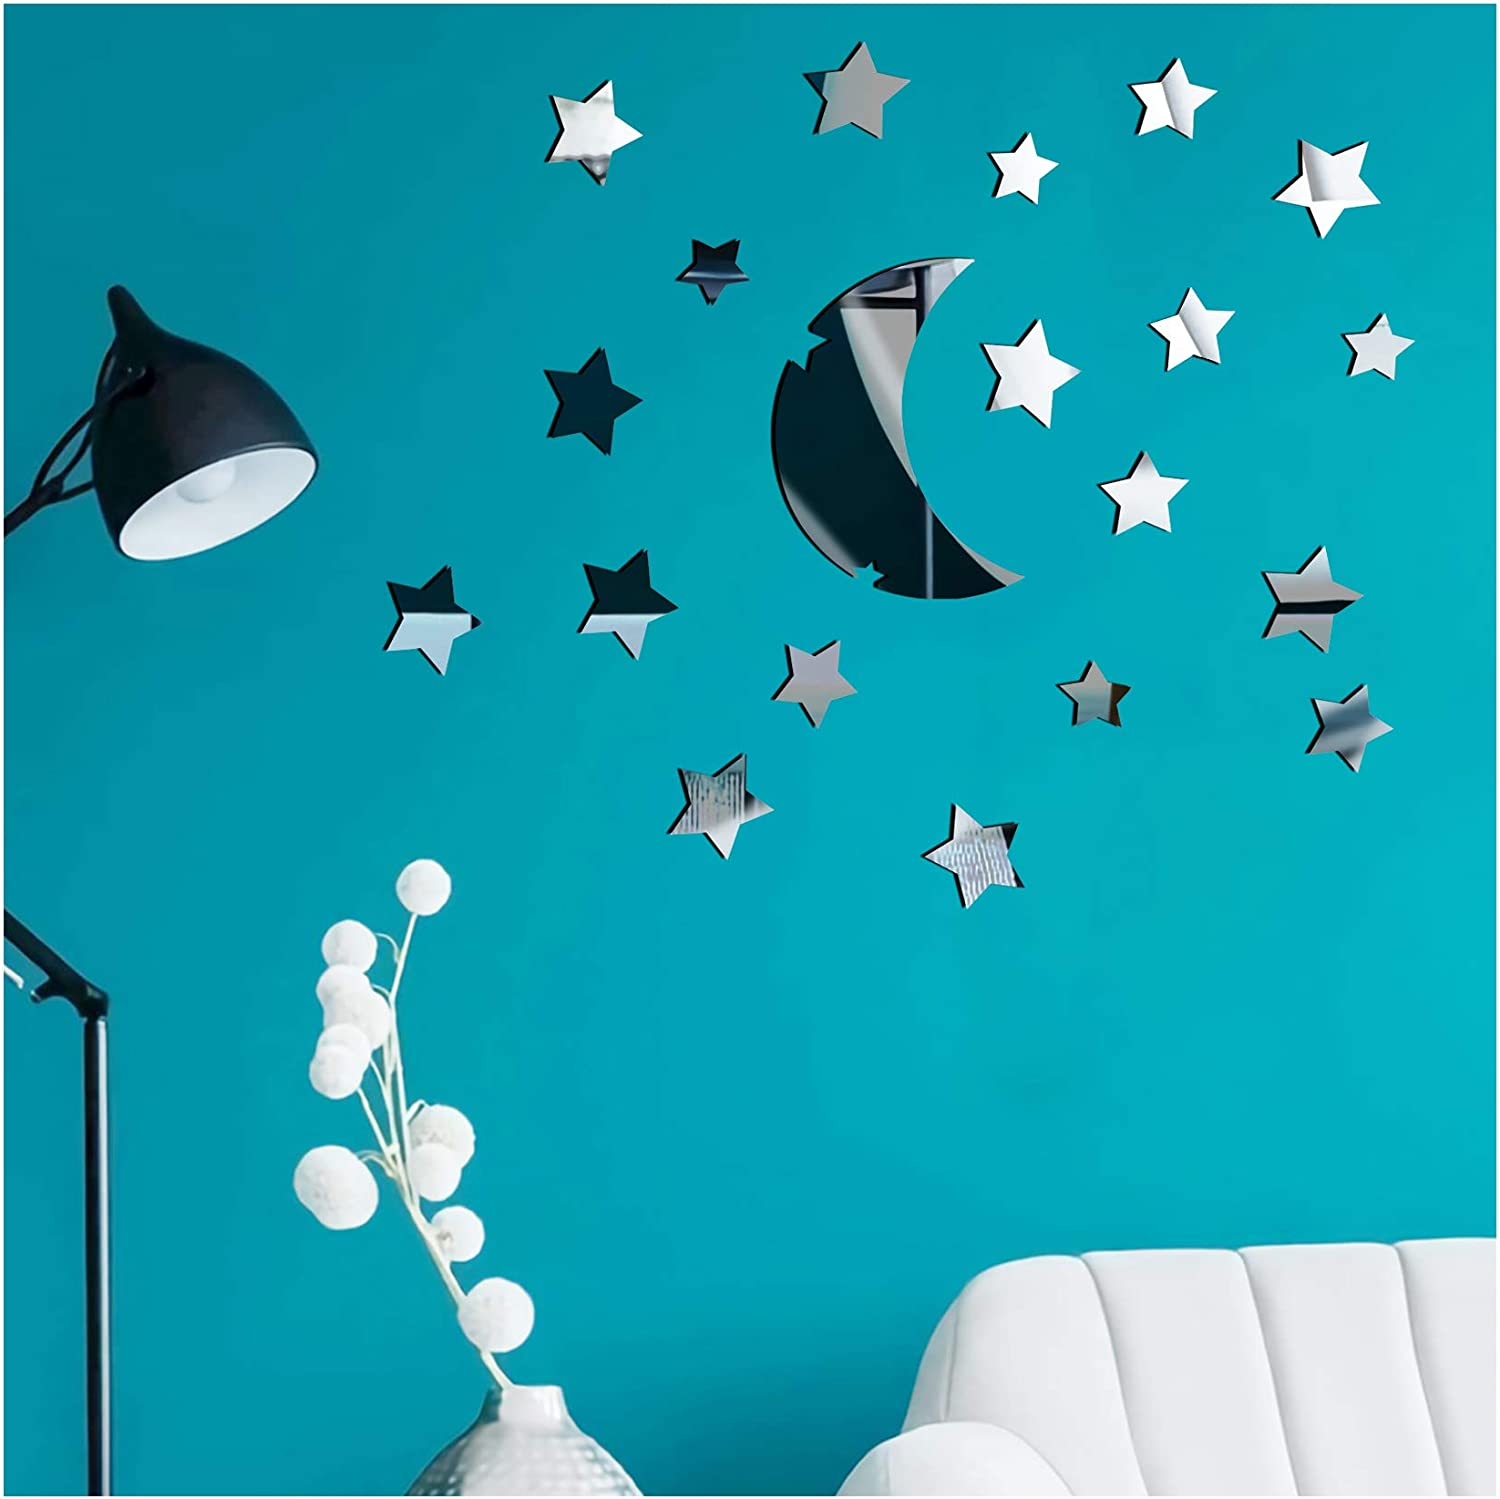 22Pcs Silver Moon Stars Acrylic Mirror Wall Stickers, Self Adhesive Mirror Sheets Sticker, Non Glass Mirror Tiles for DIY Home Bedroom Wall Decor (Moon Stars)